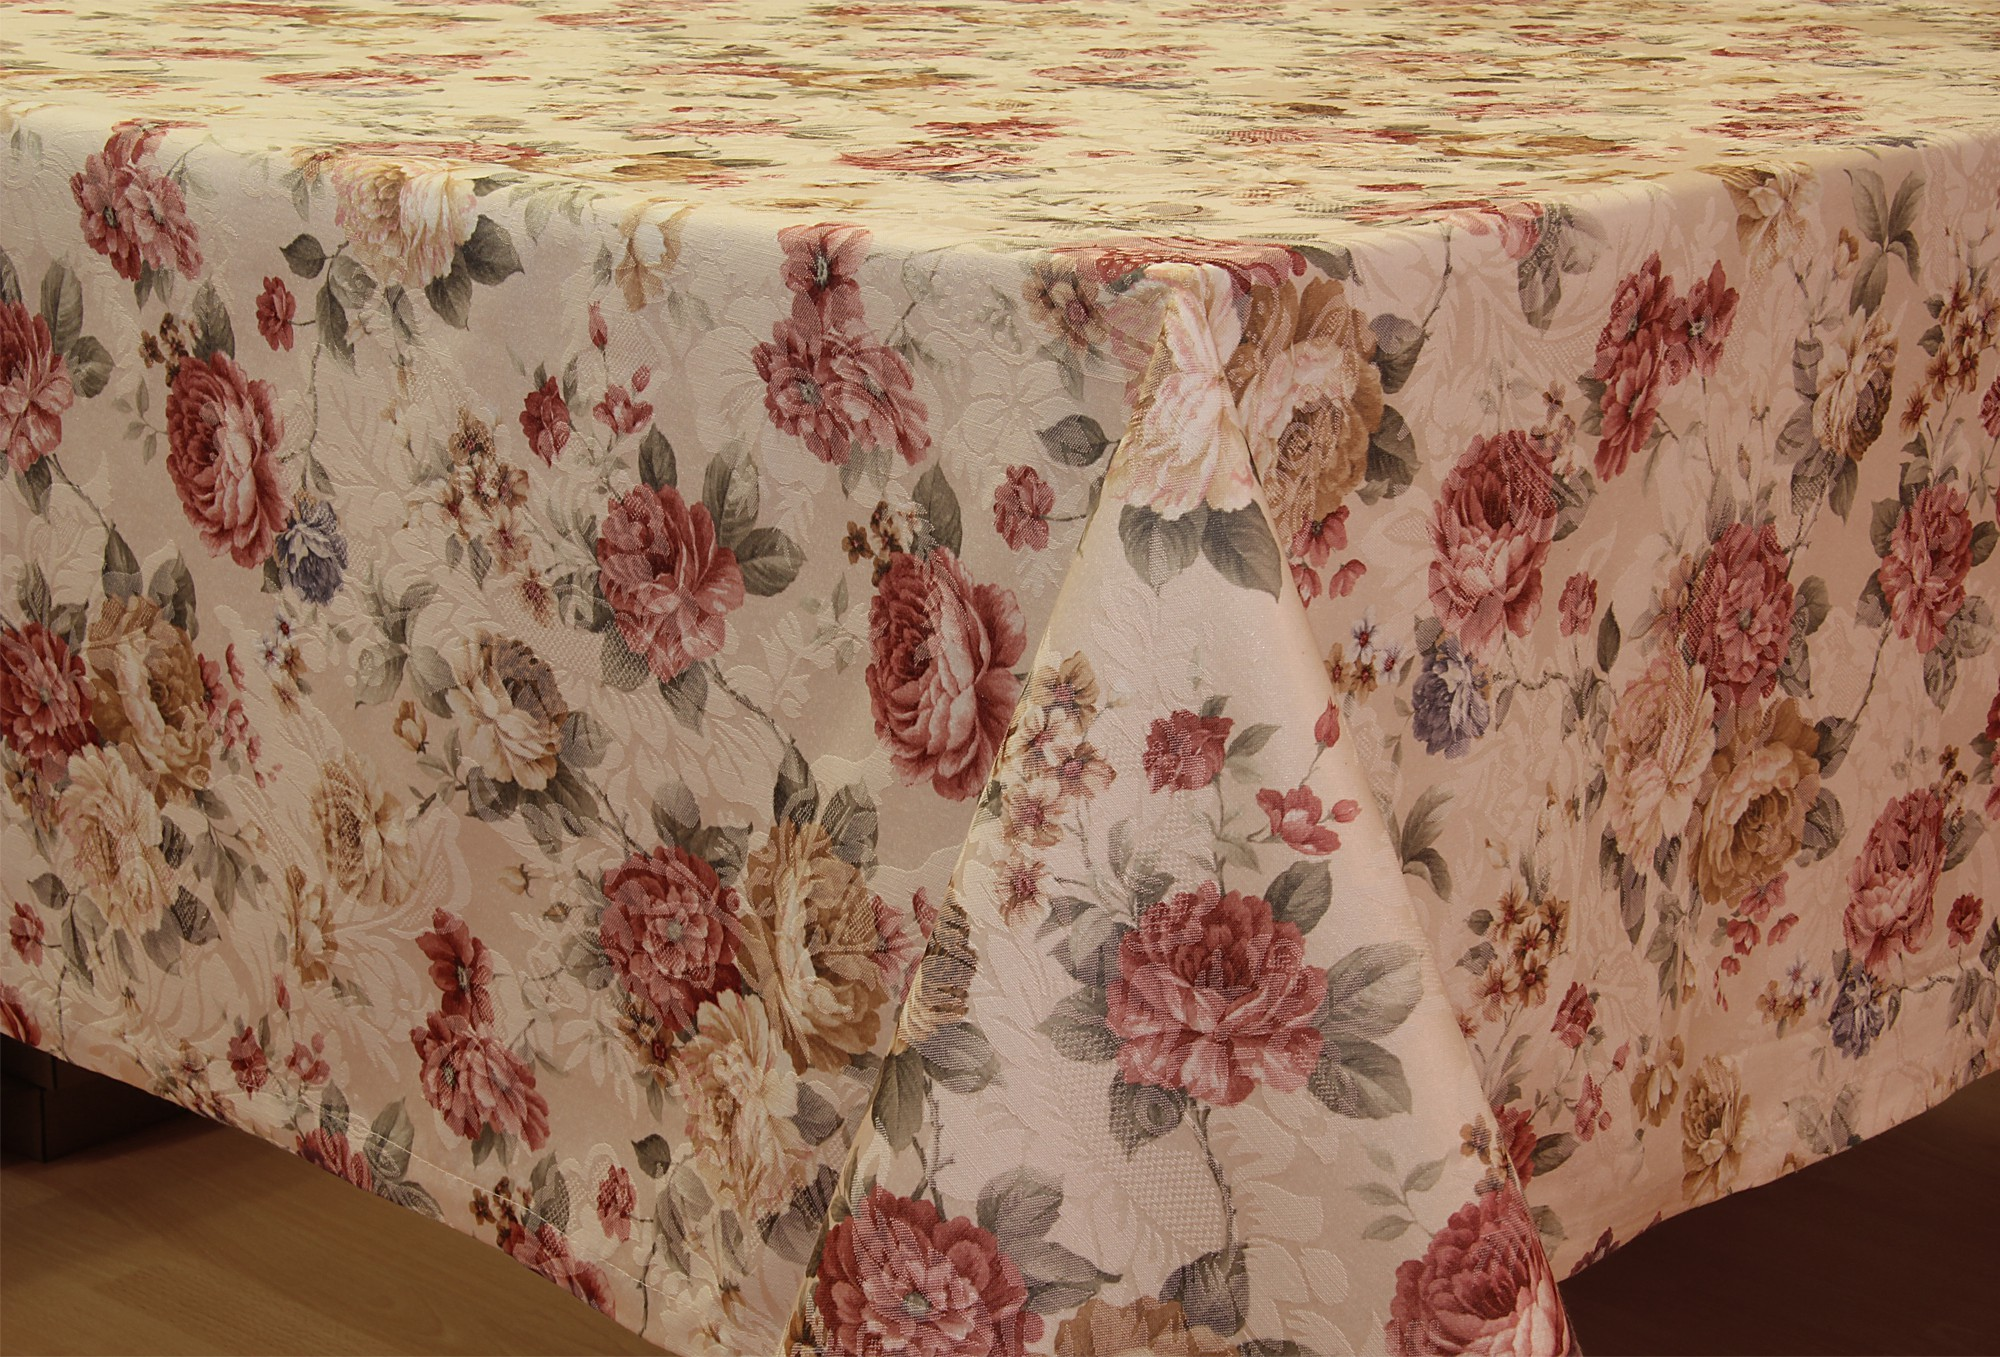 noble jacquard roses table runner tablecloth cushion cover high quality with hem ebay. Black Bedroom Furniture Sets. Home Design Ideas